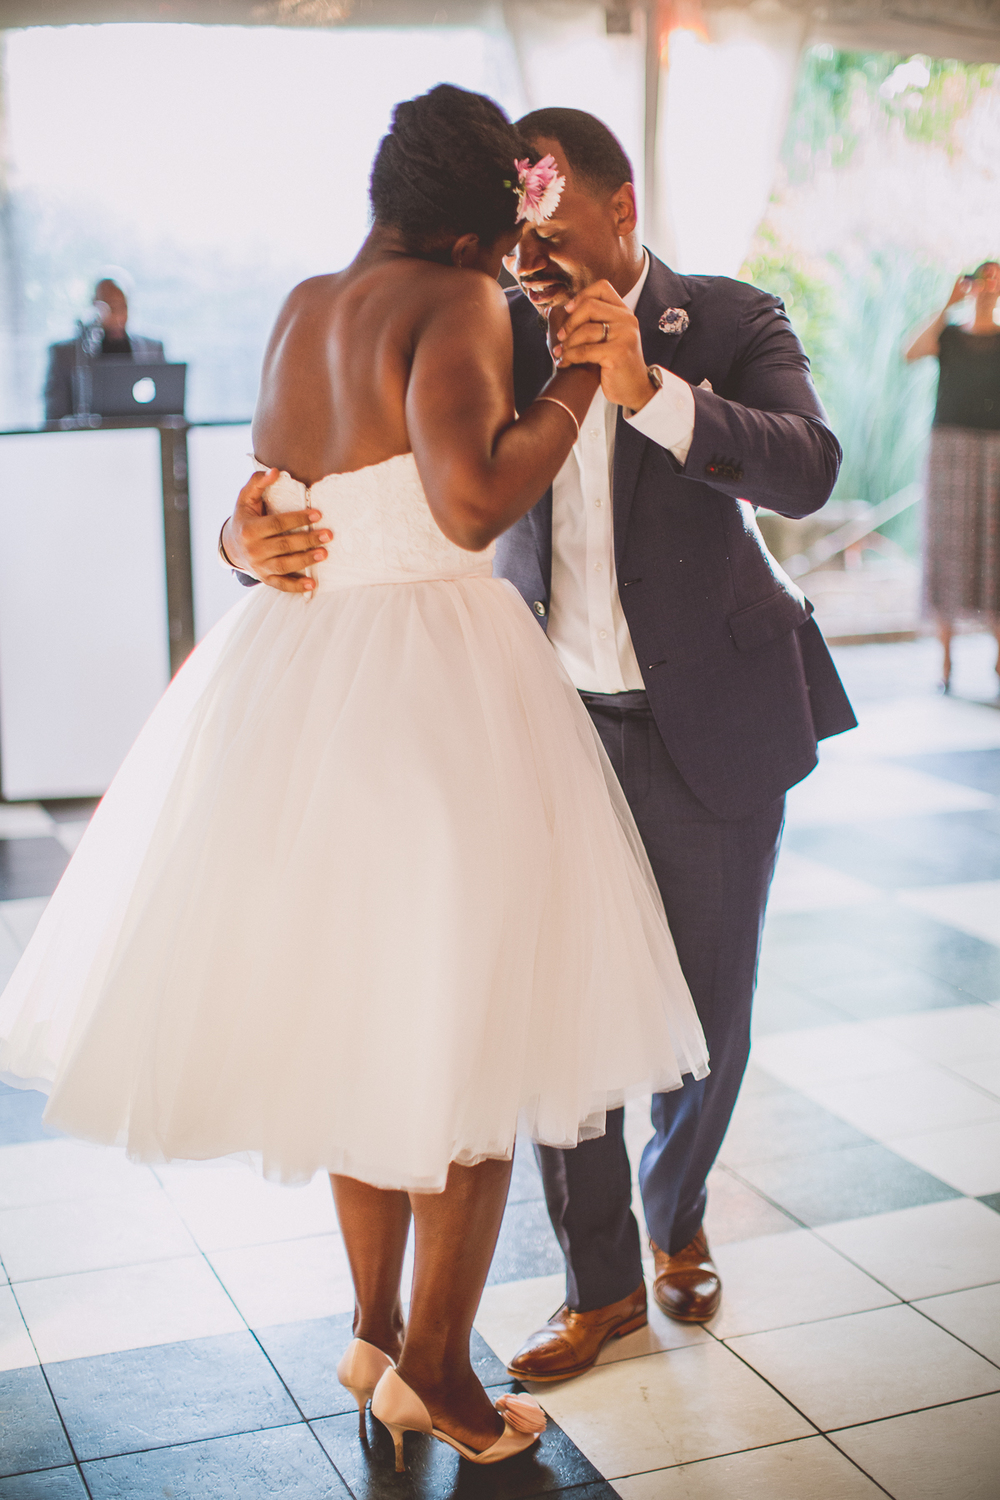 cameron-camaro-kelley-raye-atlanta-wedding-photographer-113.jpg